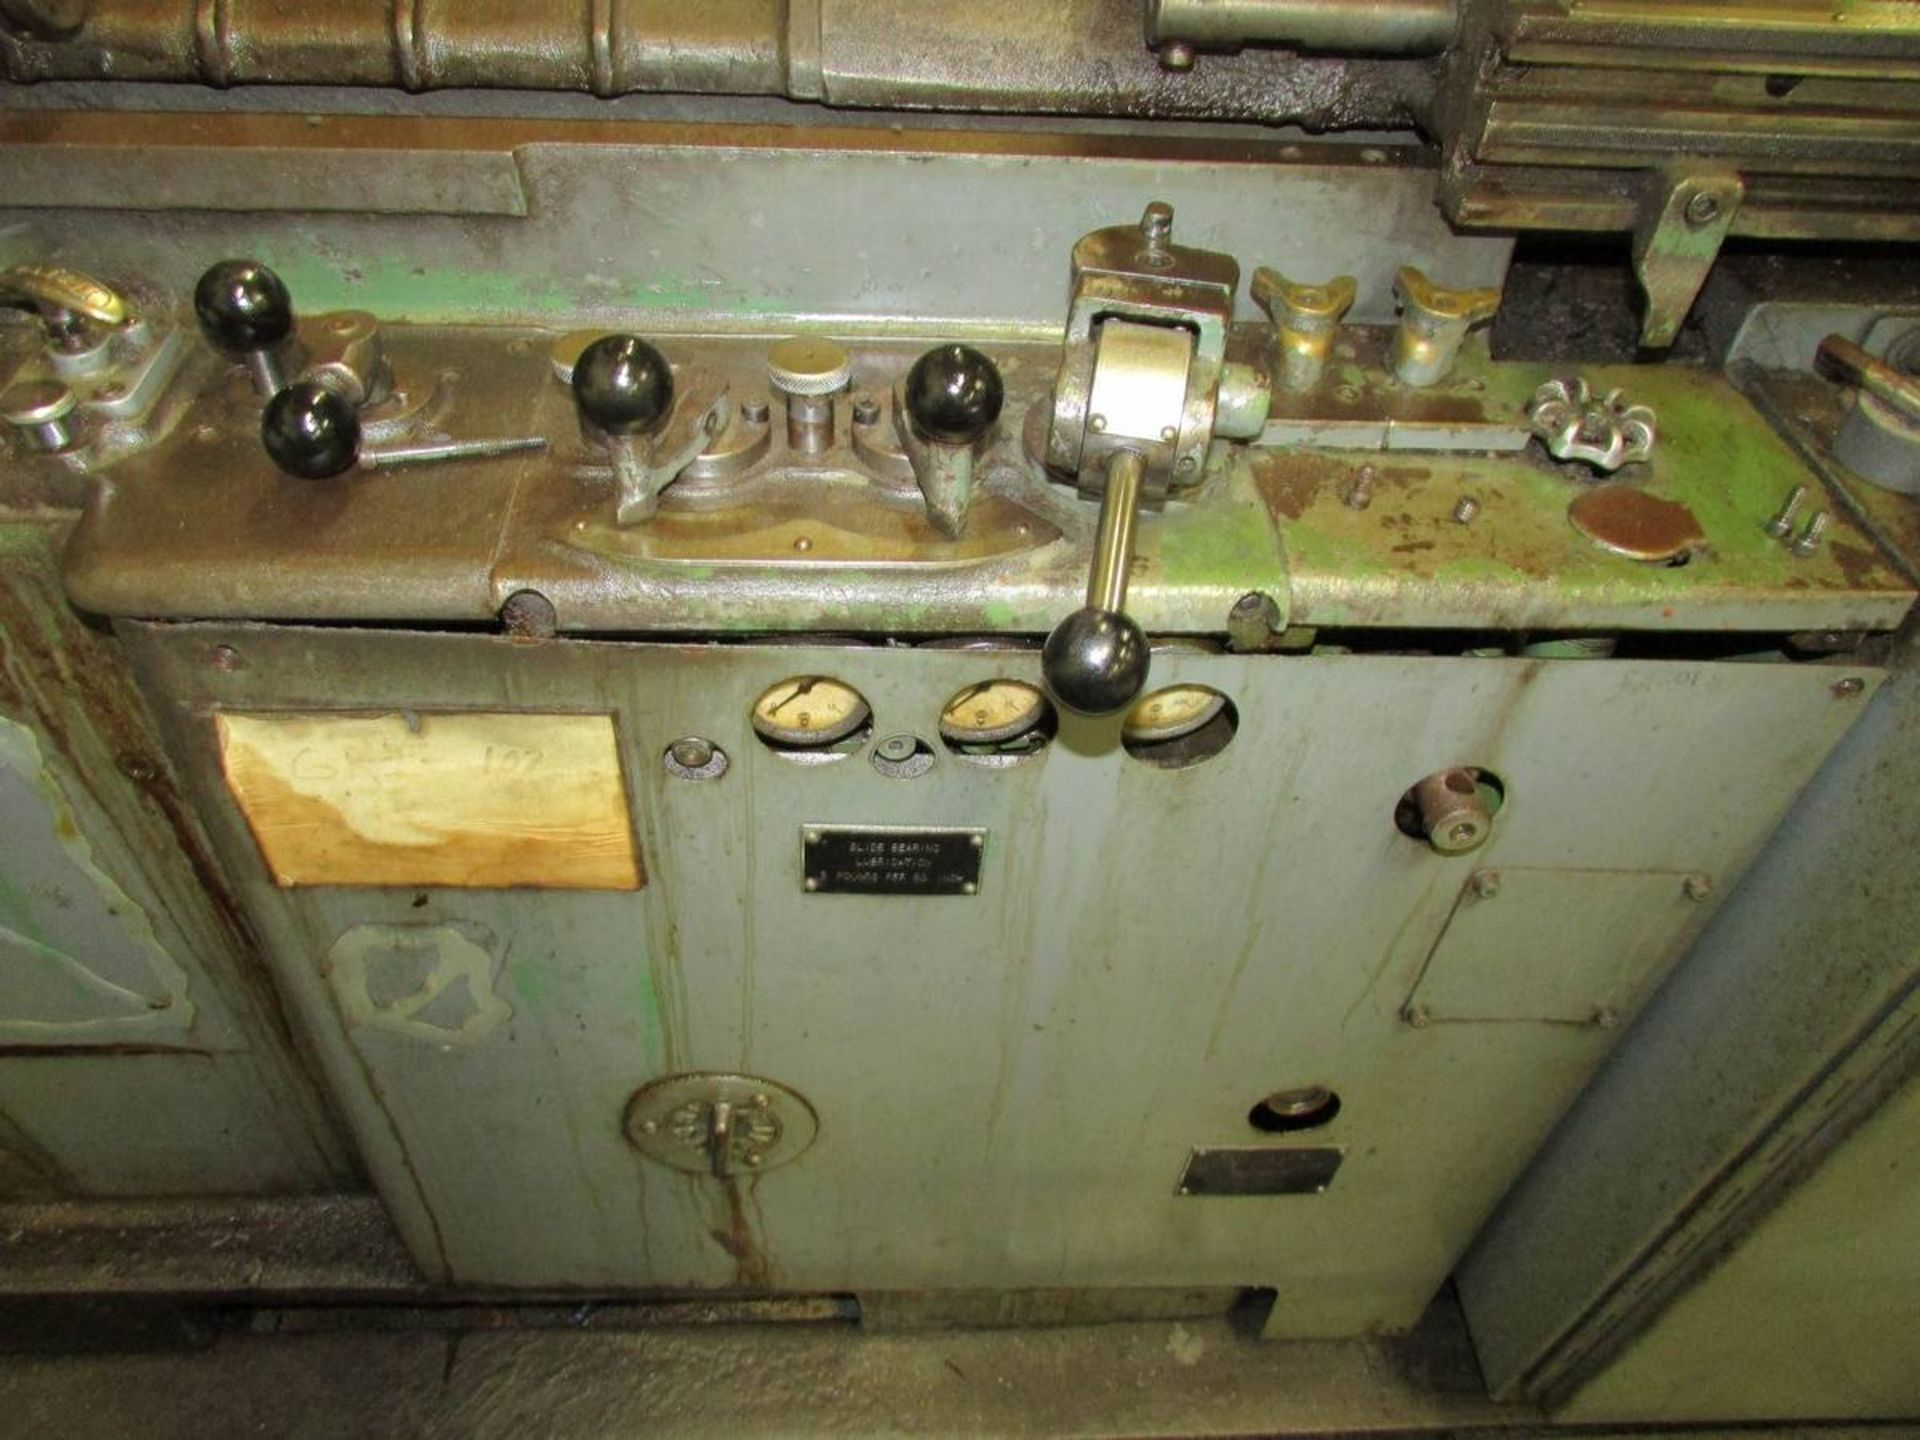 1981 Bryant 1116 ID Cylindrical Grinder - Image 8 of 20